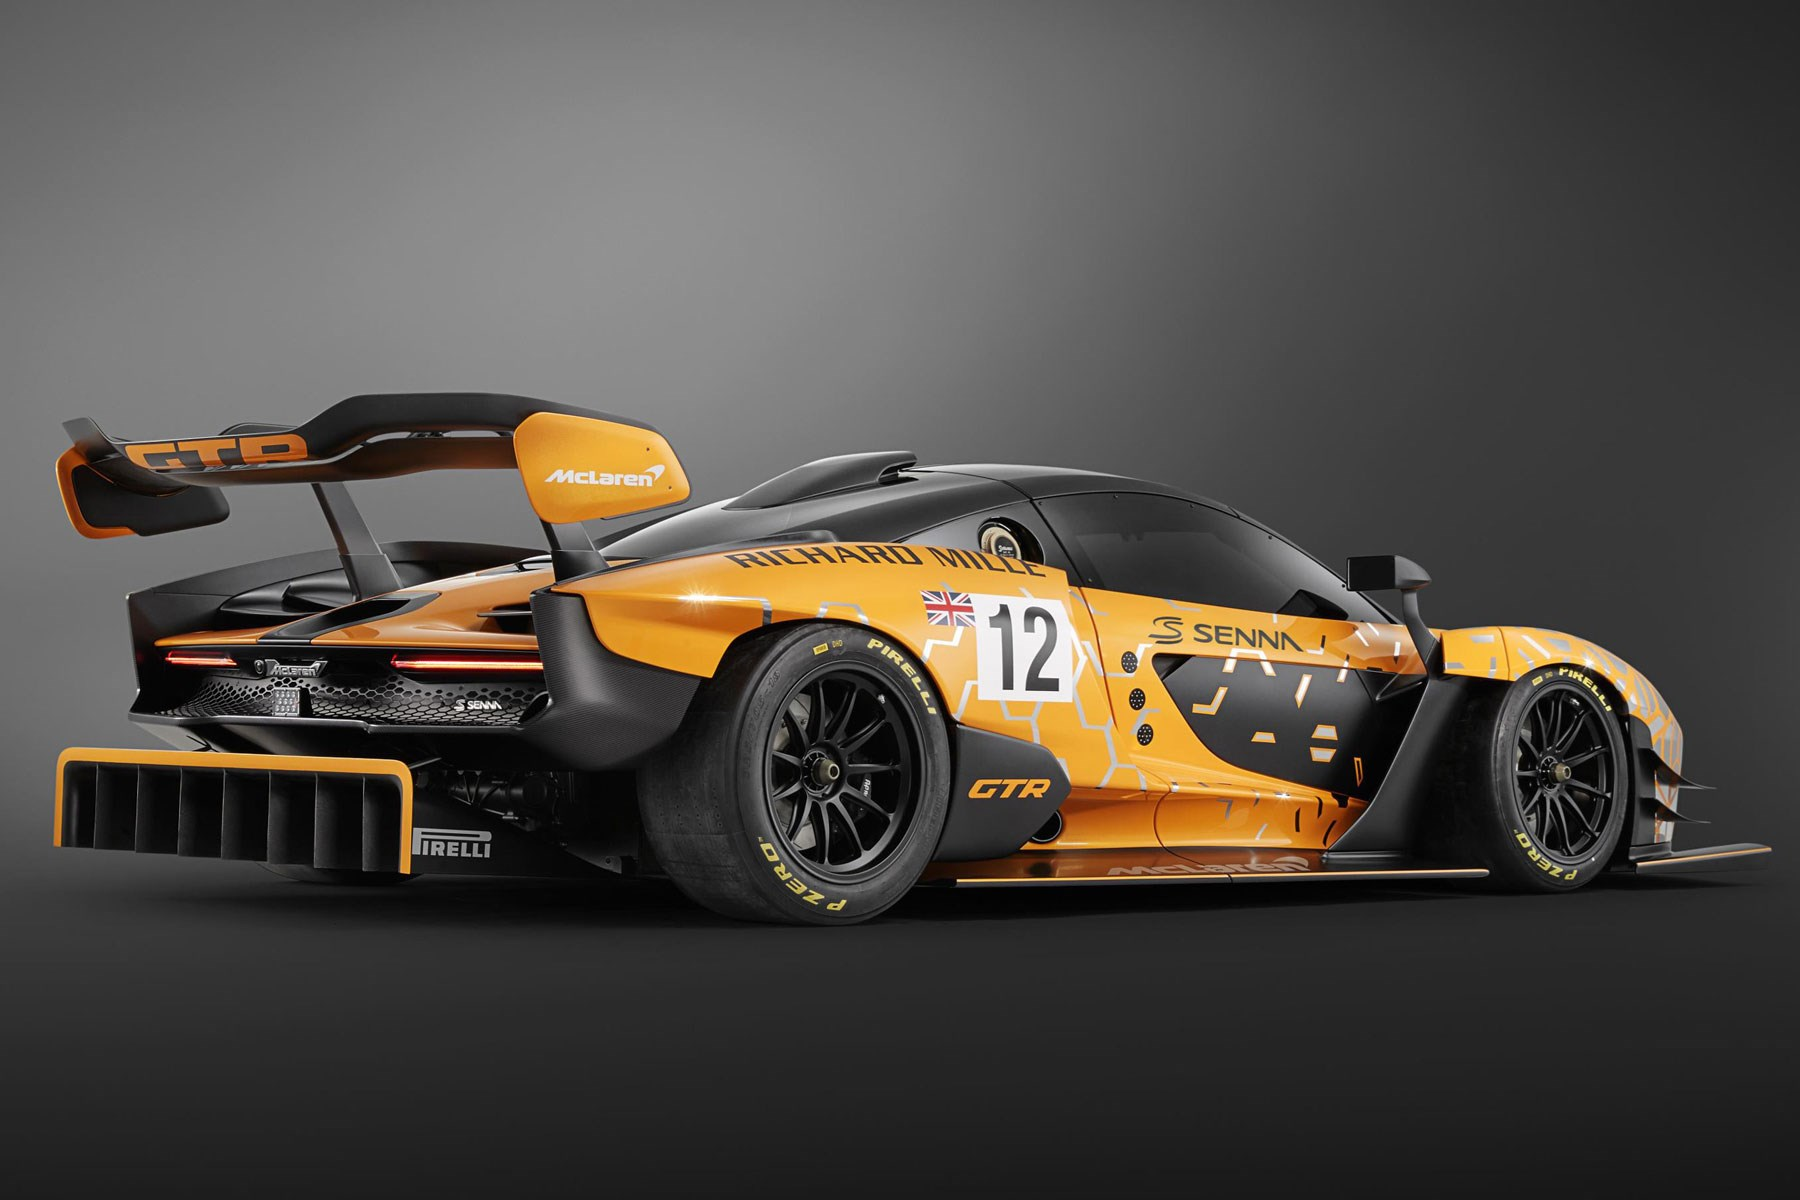 Mclaren Senna Gtr Concept Uncompromising Supercar Gets Even More Extreme Track Only Version